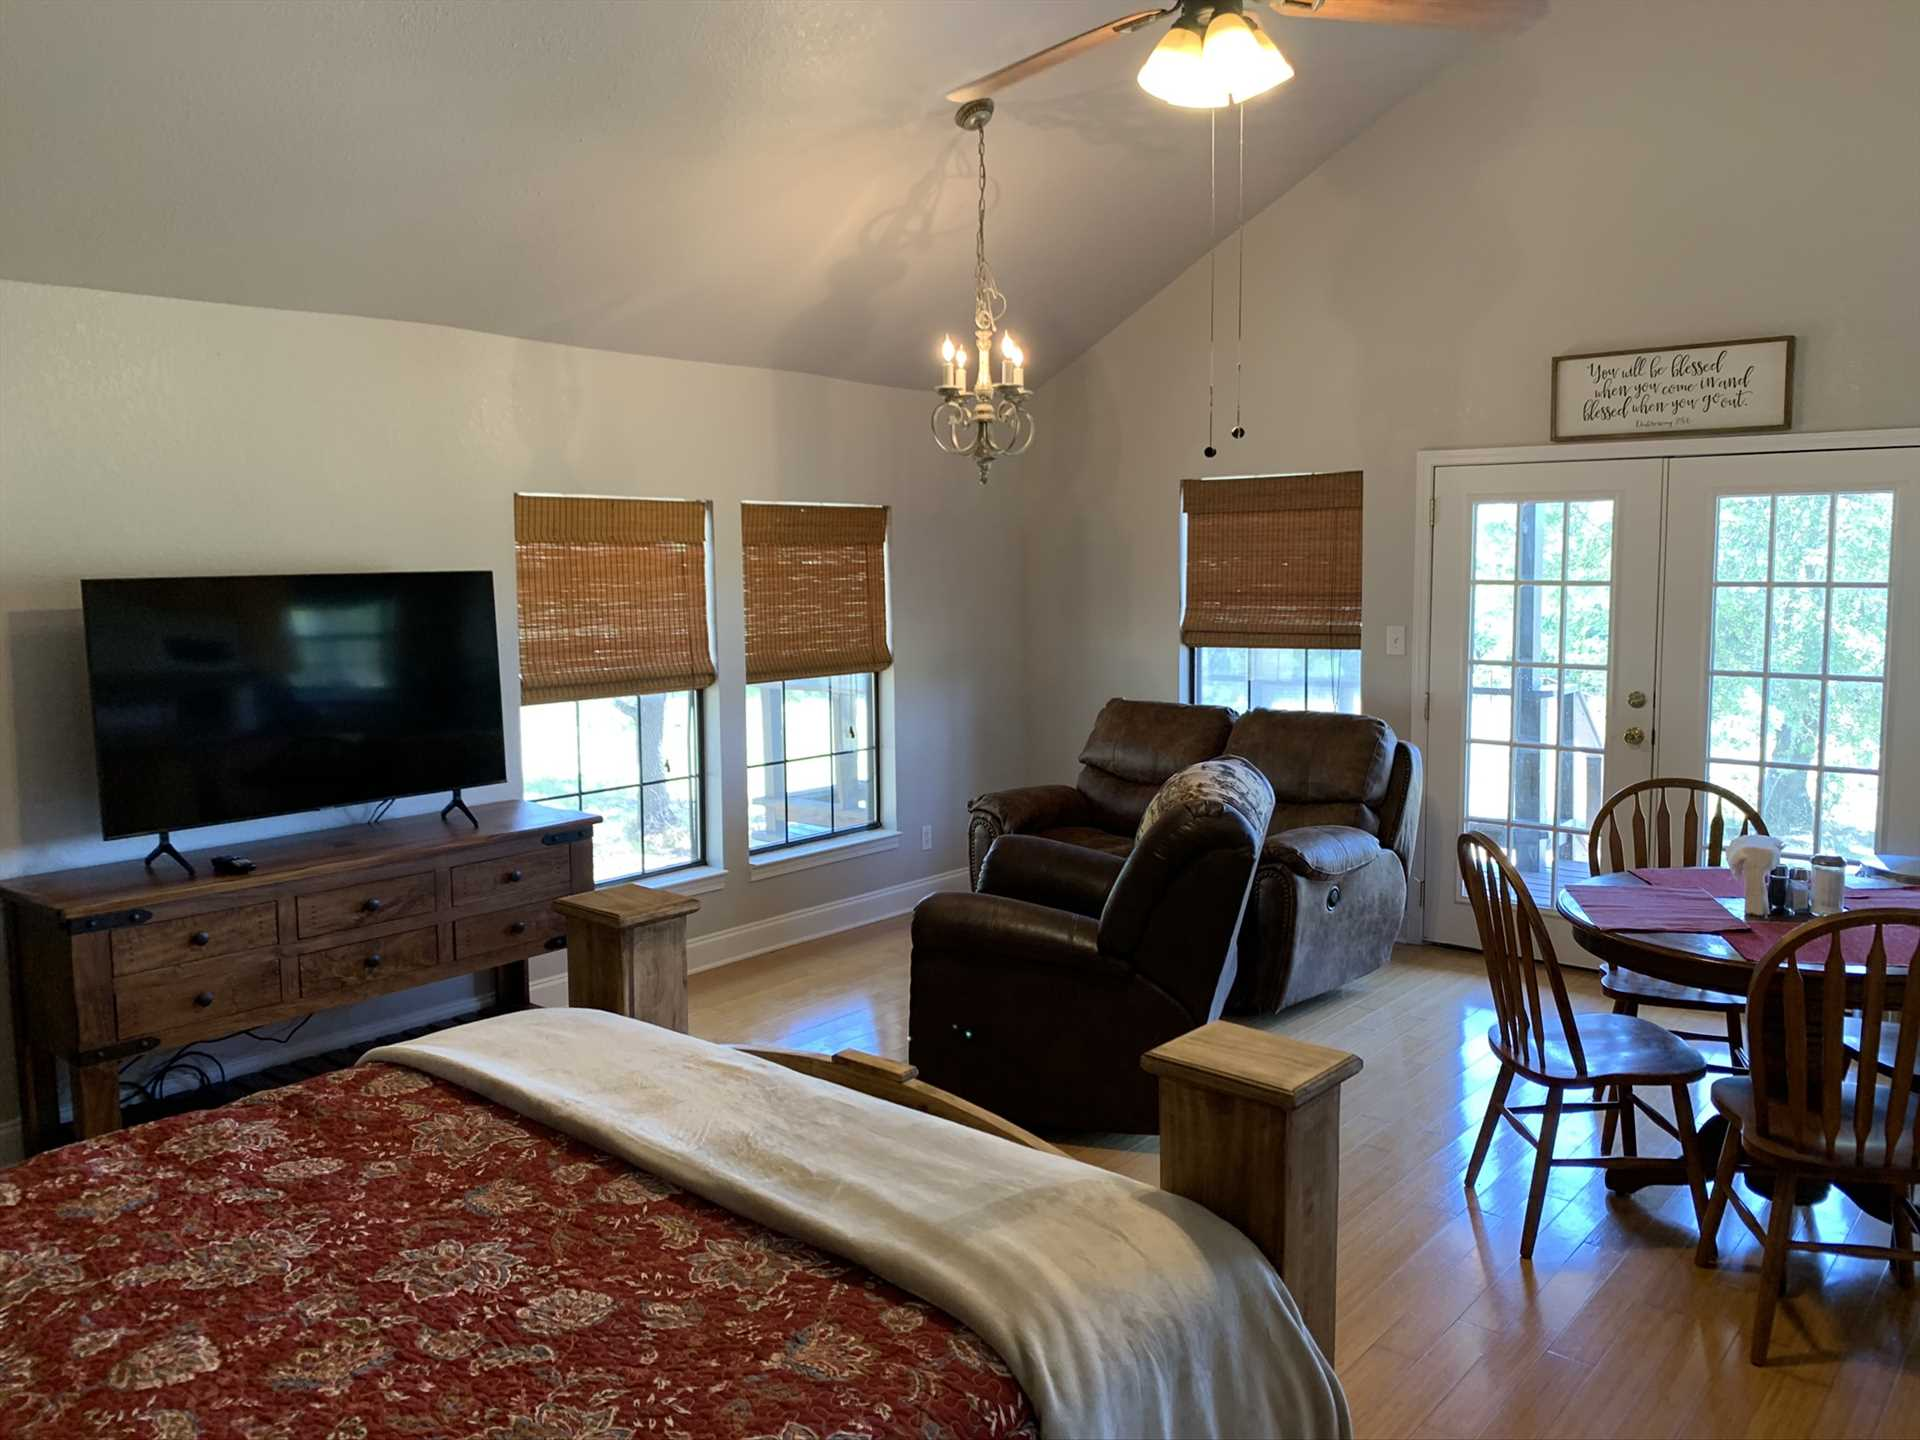 The open-floor plan of the cabin allows the French doors and windows to fill the space with warm natural light.